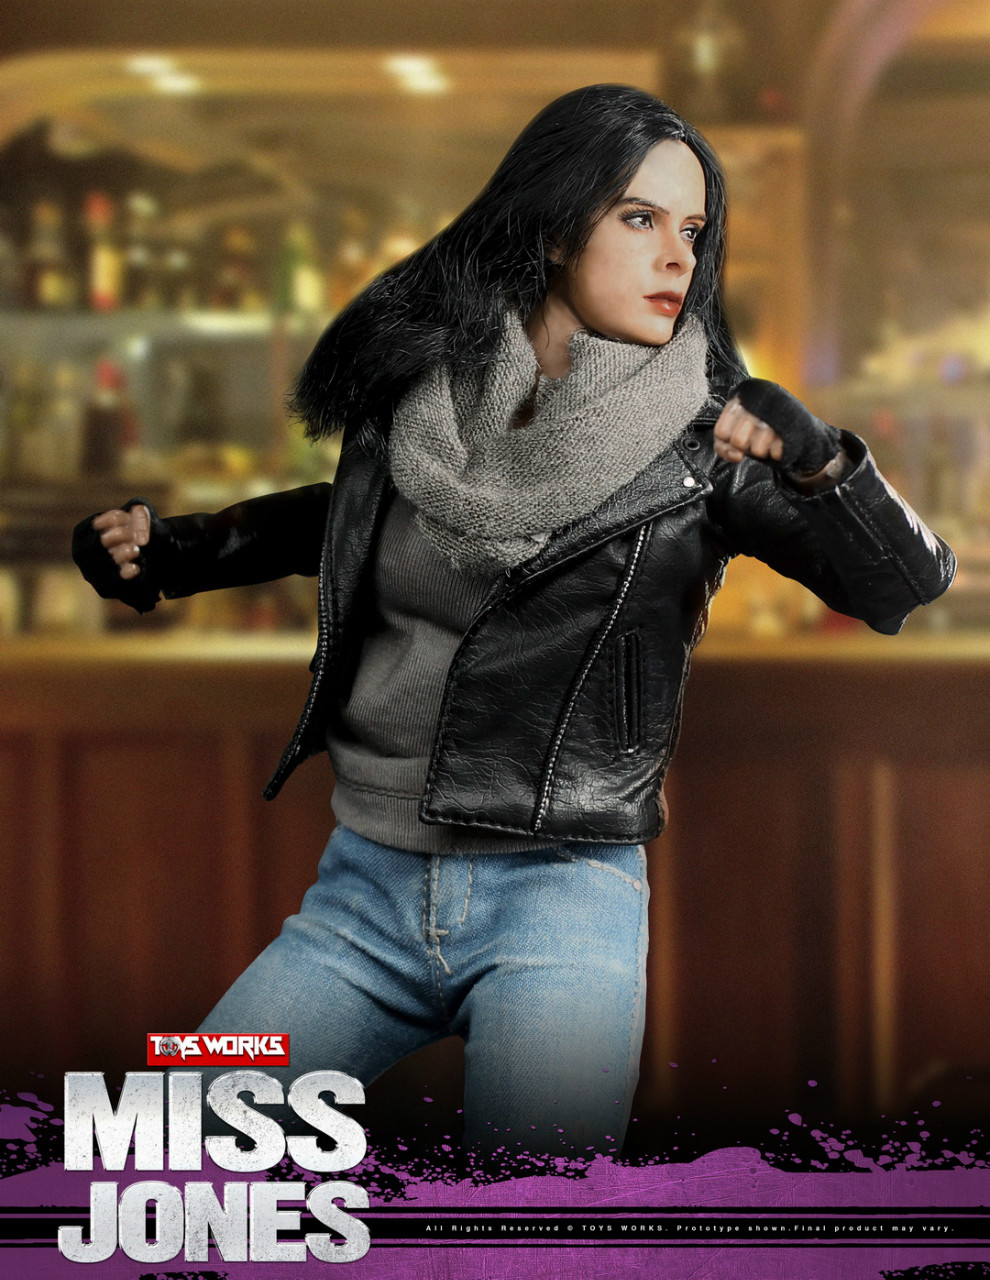 NEW PRODUCT: TOYS WORKS New: 1/6 Miss Jones Miss Jones can move TW007 19163614